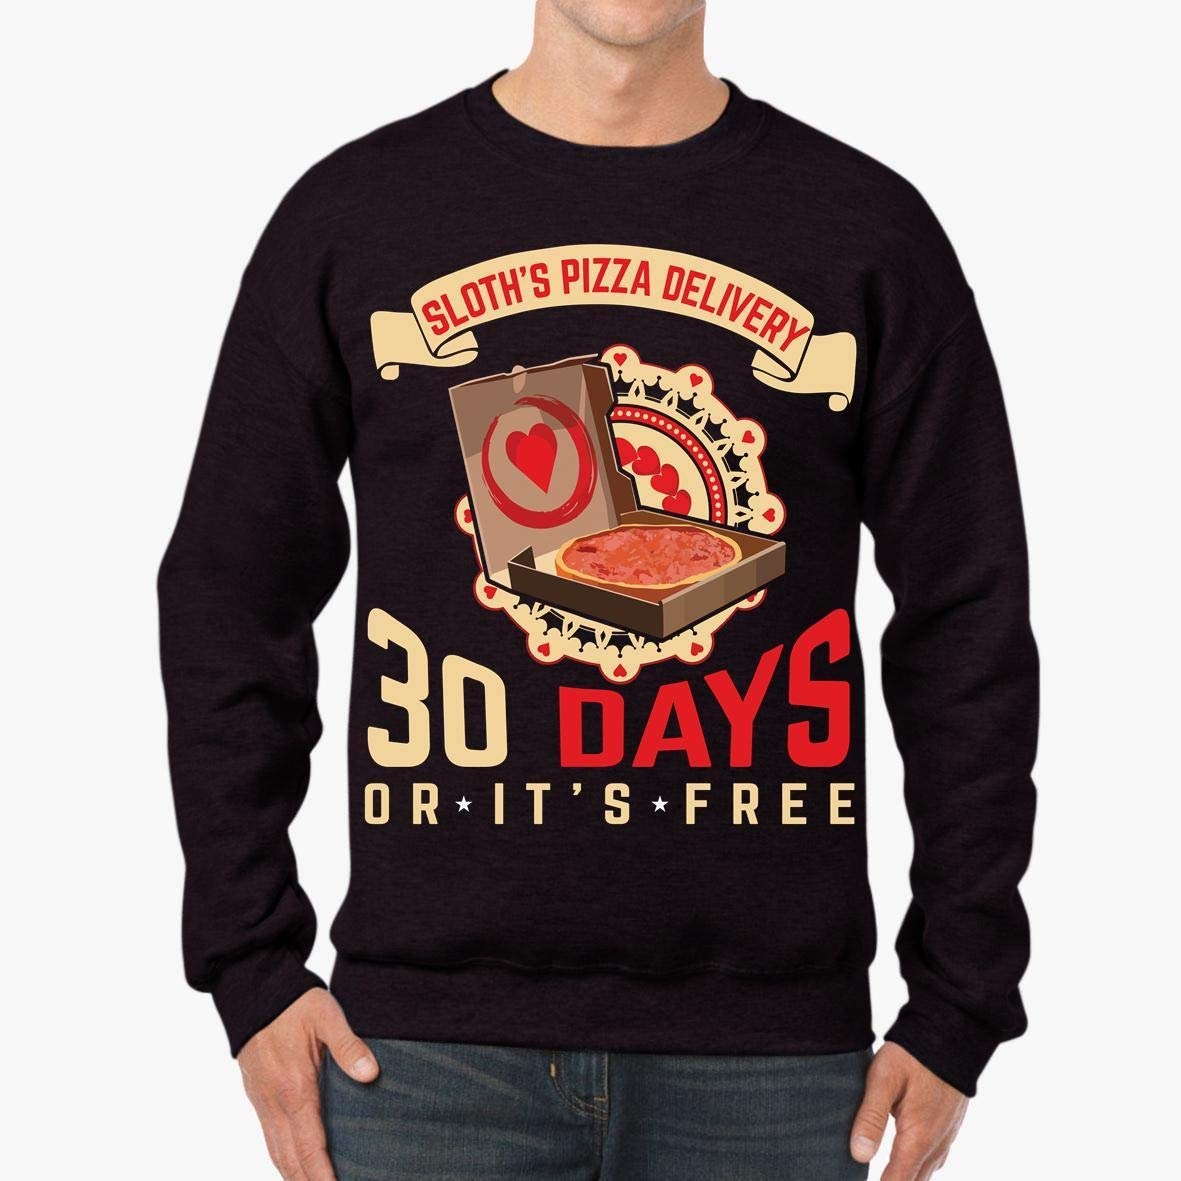 Sloth/_s Pizza Delivery Funny Unisex Sweatshirt tee